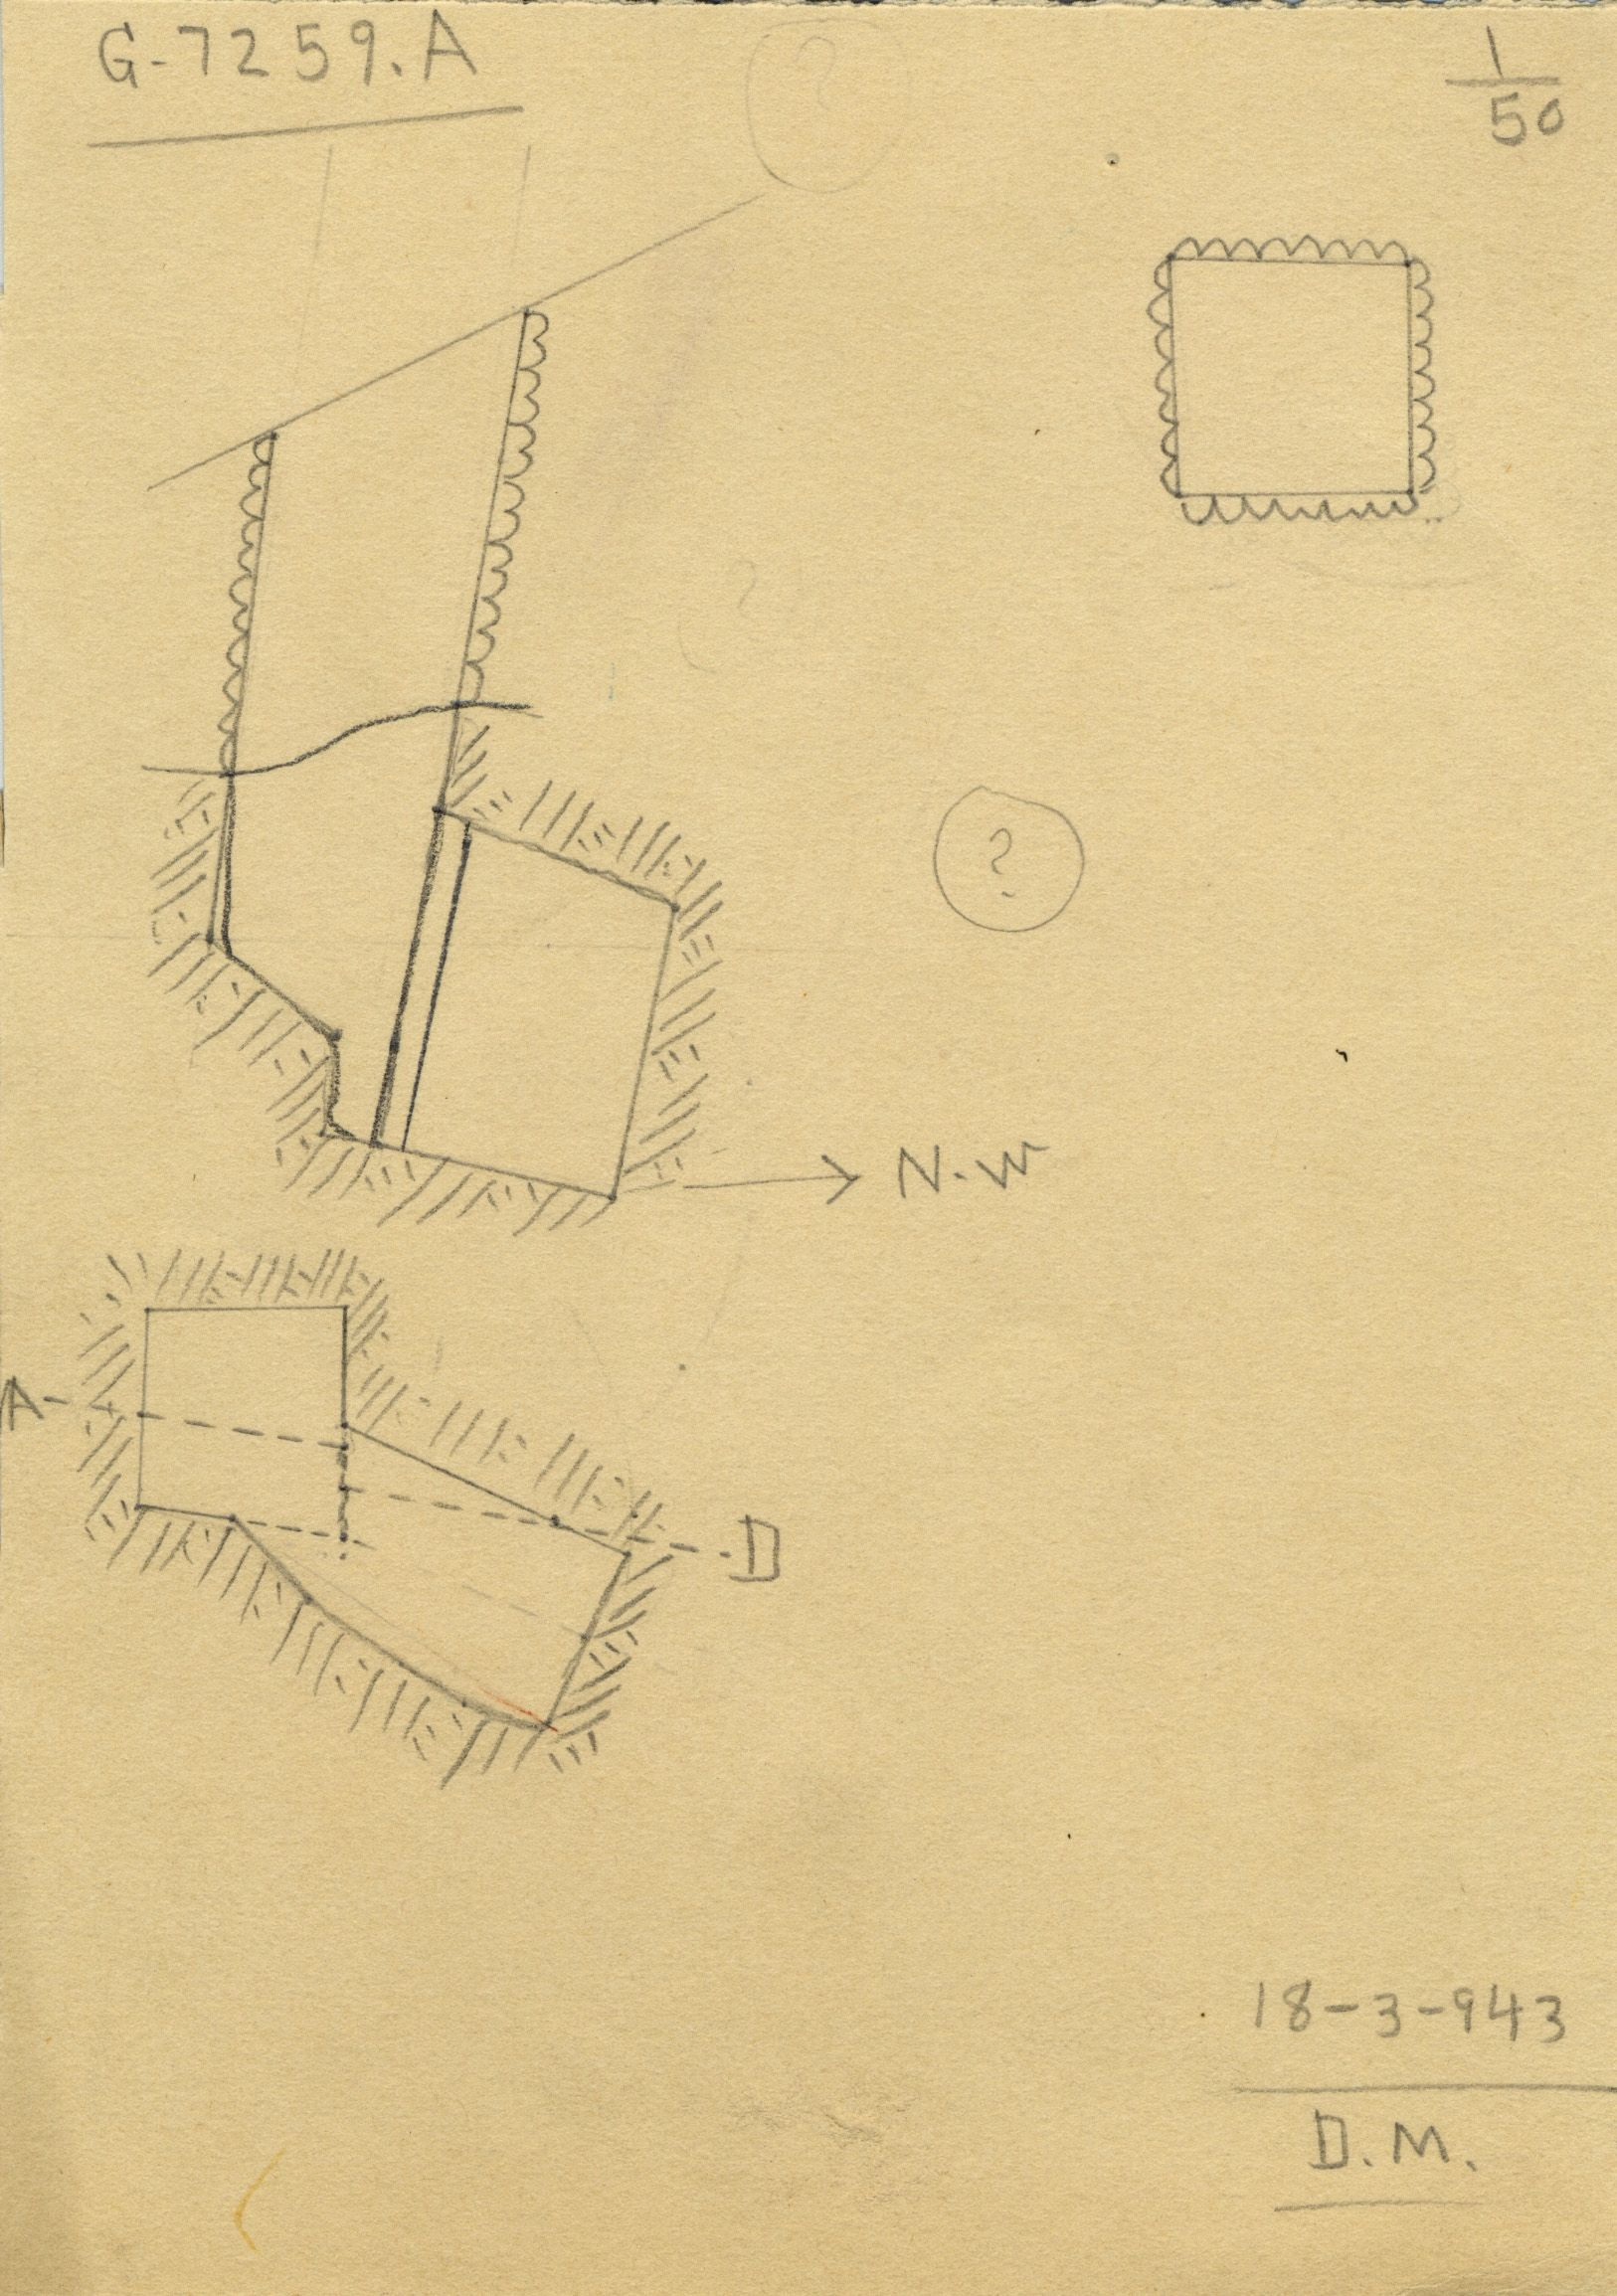 Maps and plans: G 7259, Shaft A